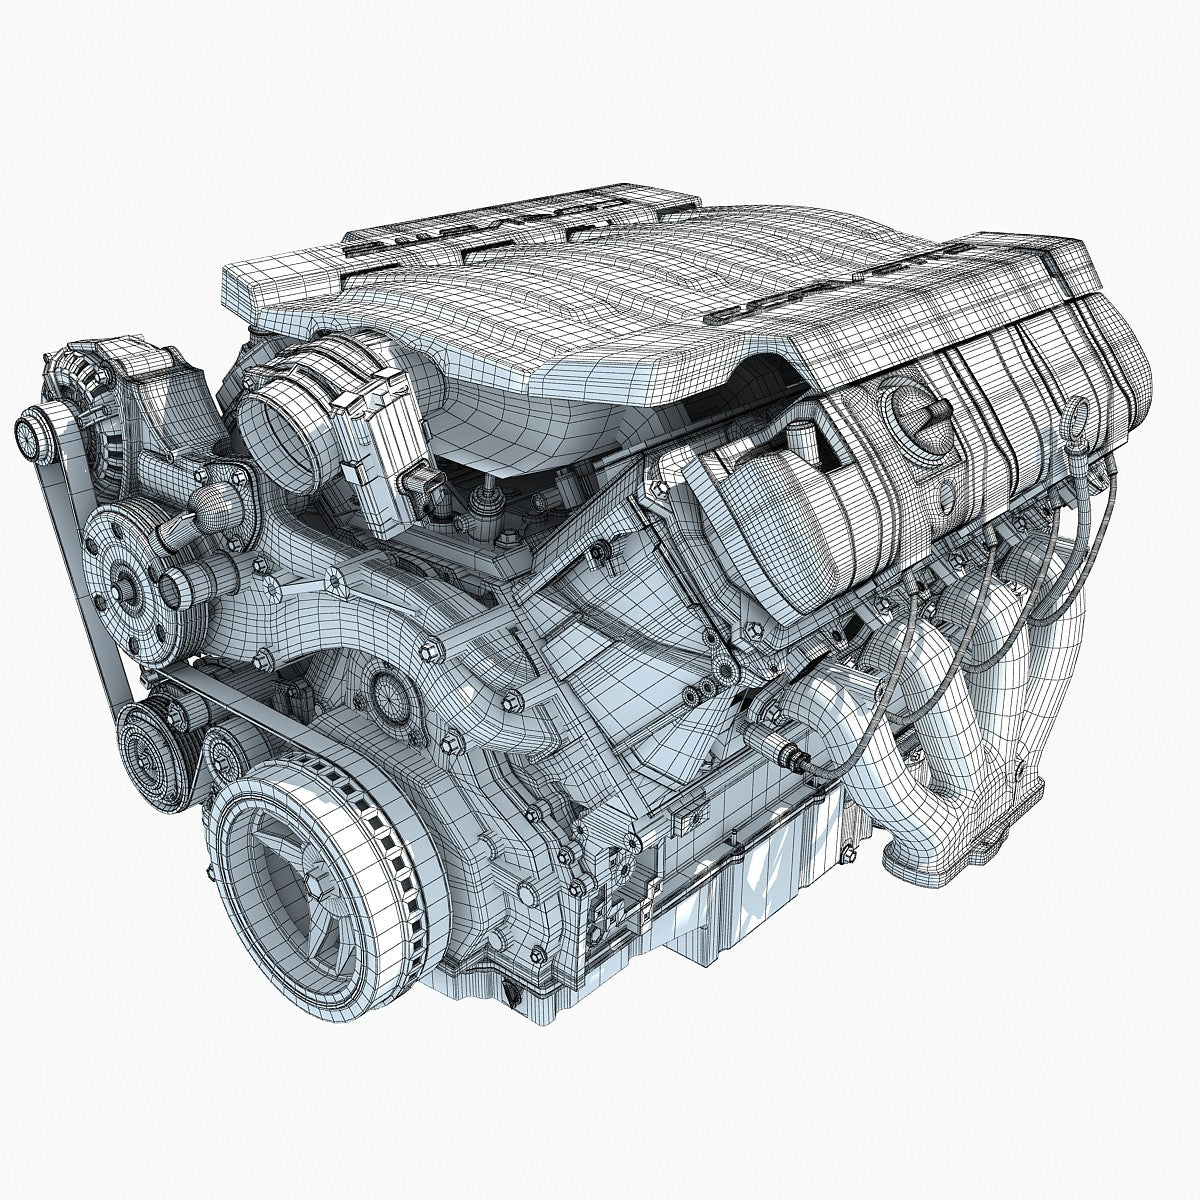 3D Models Engines